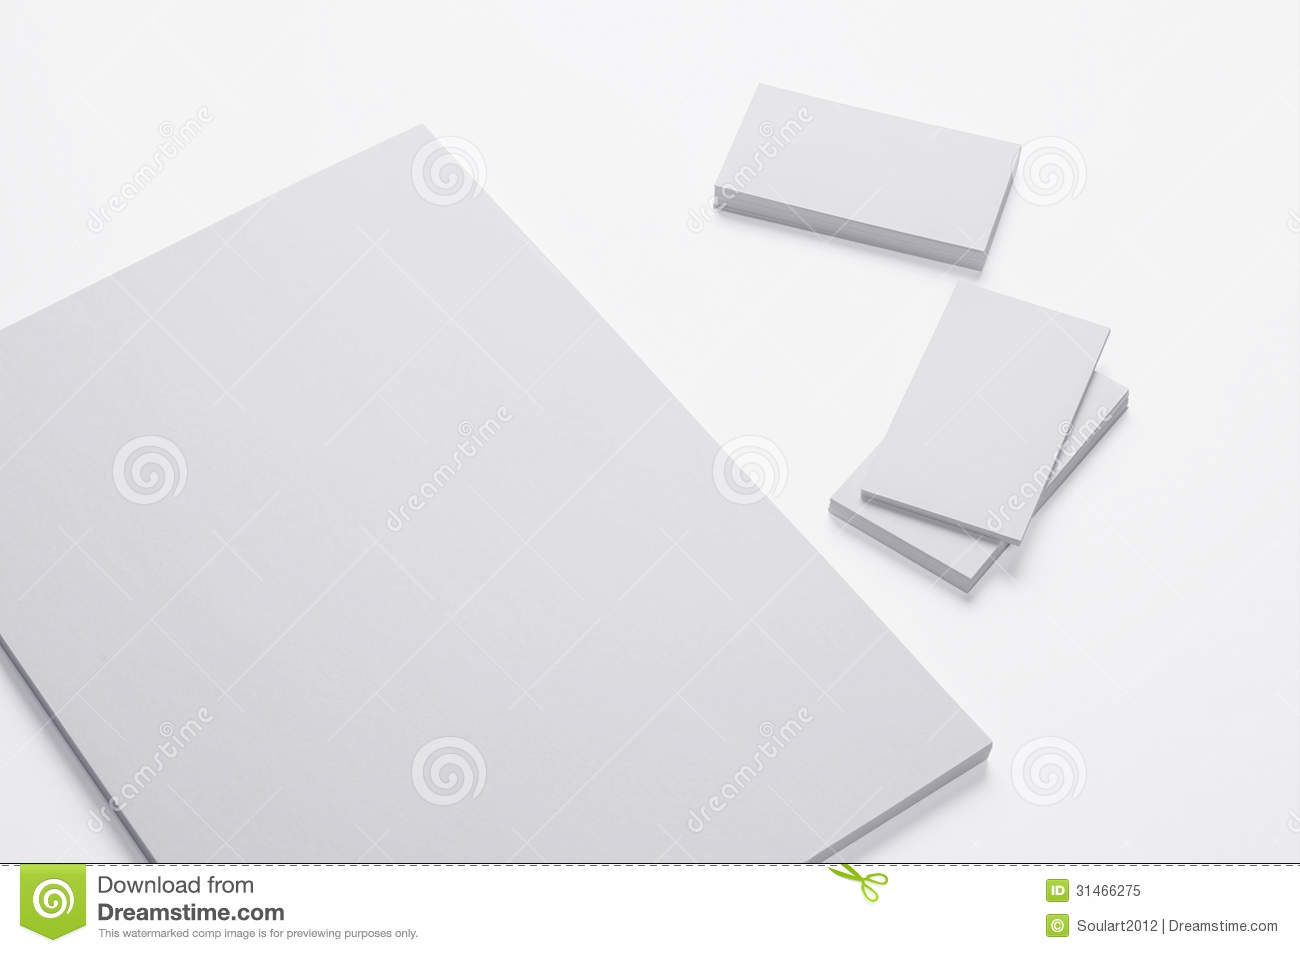 blank a4 print paper and business cards on white royalty